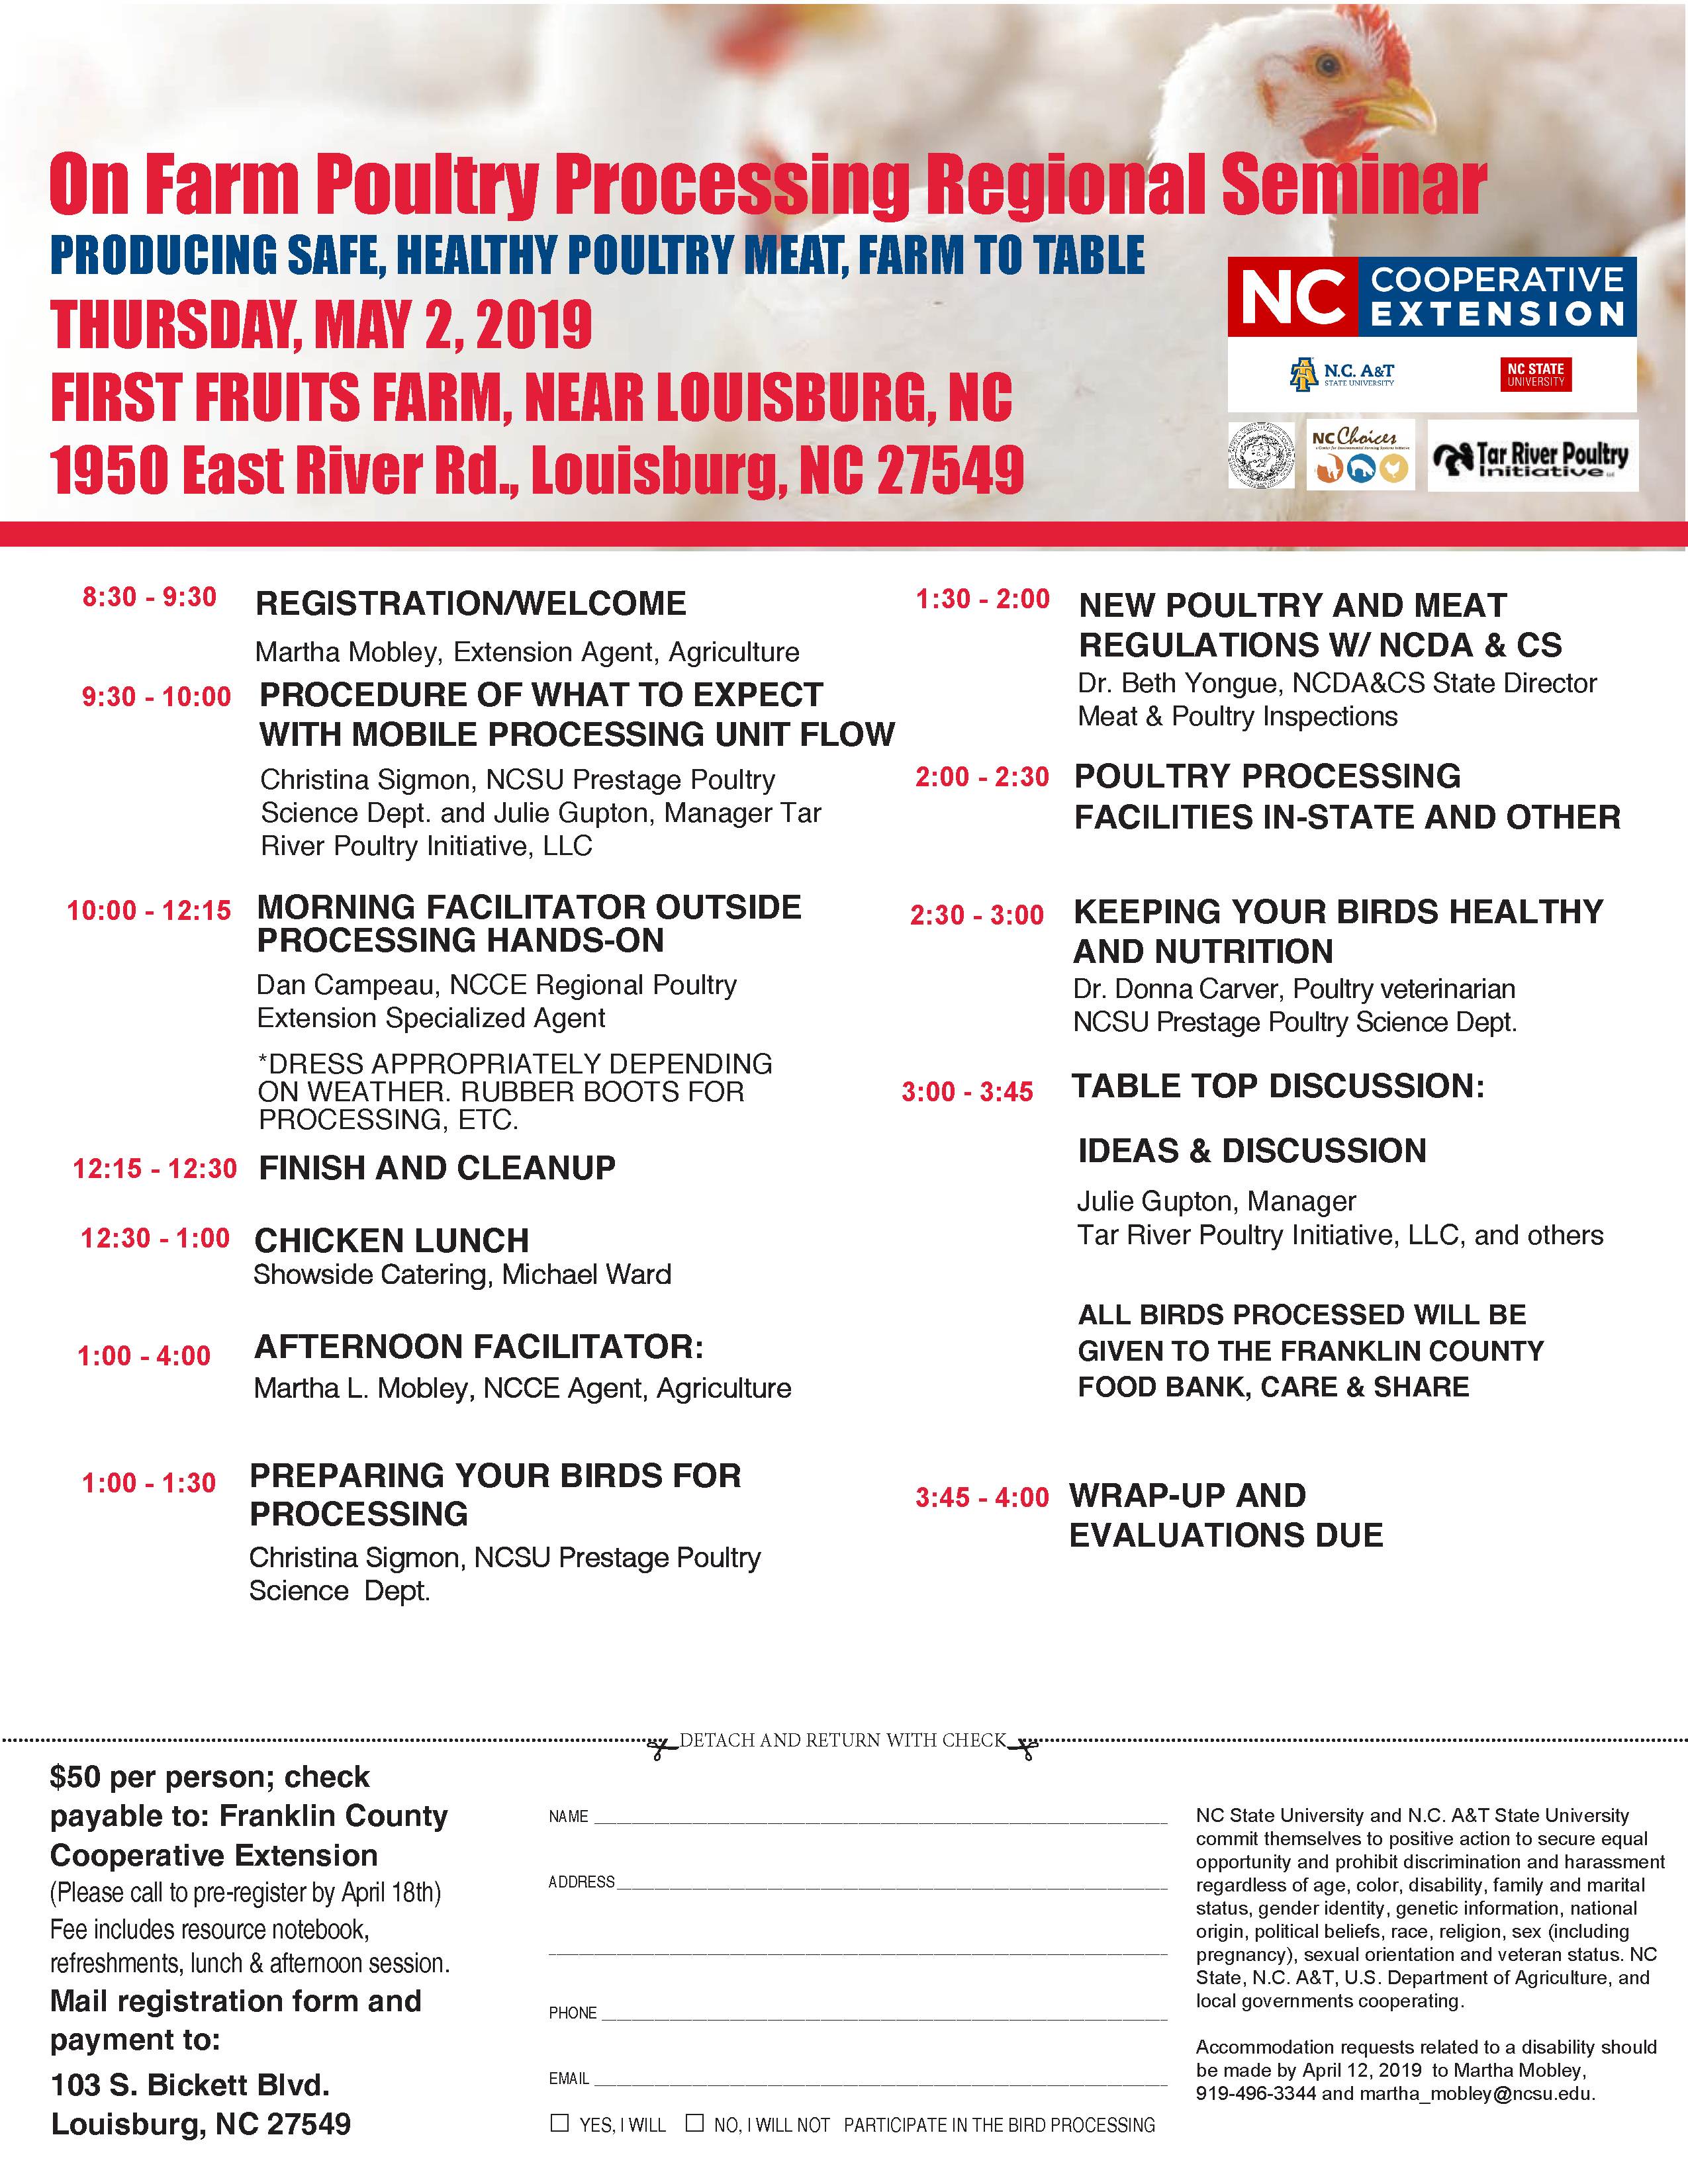 On Farm Poultry Processing Regional Seminar | North Carolina